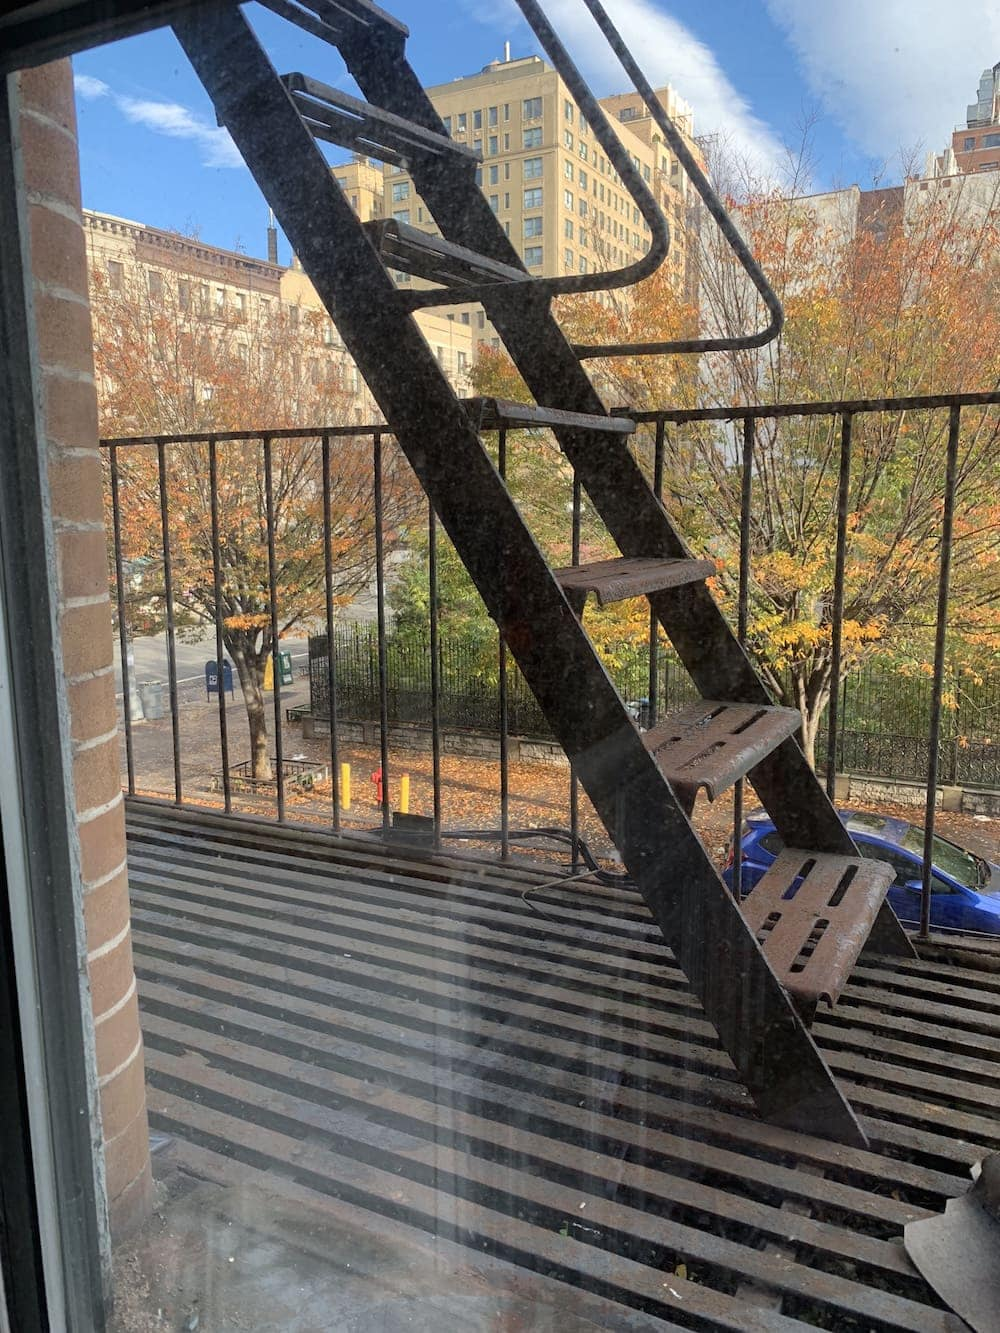 Looking at the fire escape